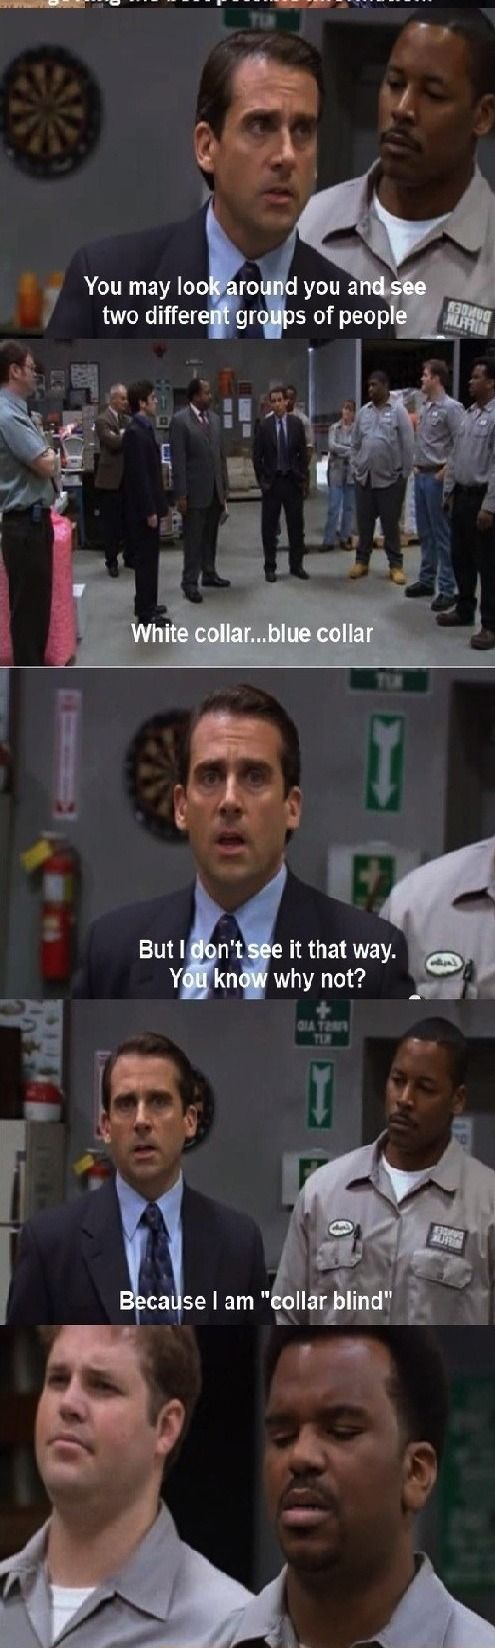 Ahaha 50 great moments from The Office. Would've liked to see more Dwight quotes but.... The office> you